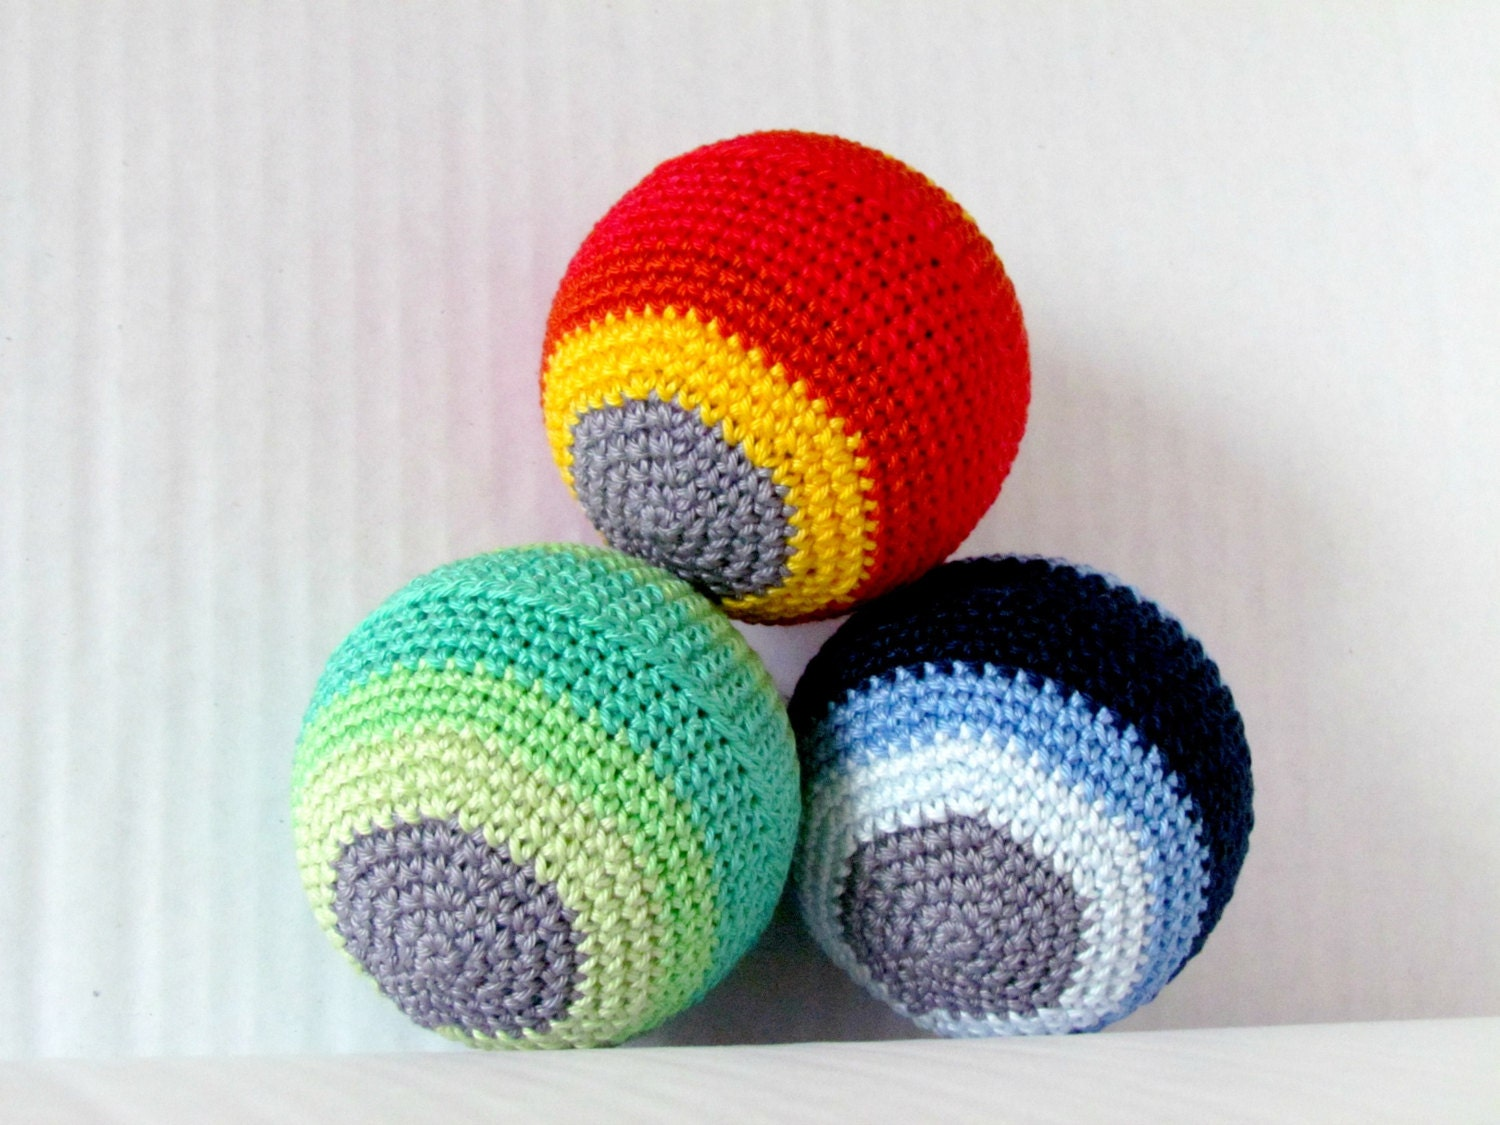 Large Amigurumi Ball Pattern : Ombre Amigurumi Ball Toy for Baby Set of 3